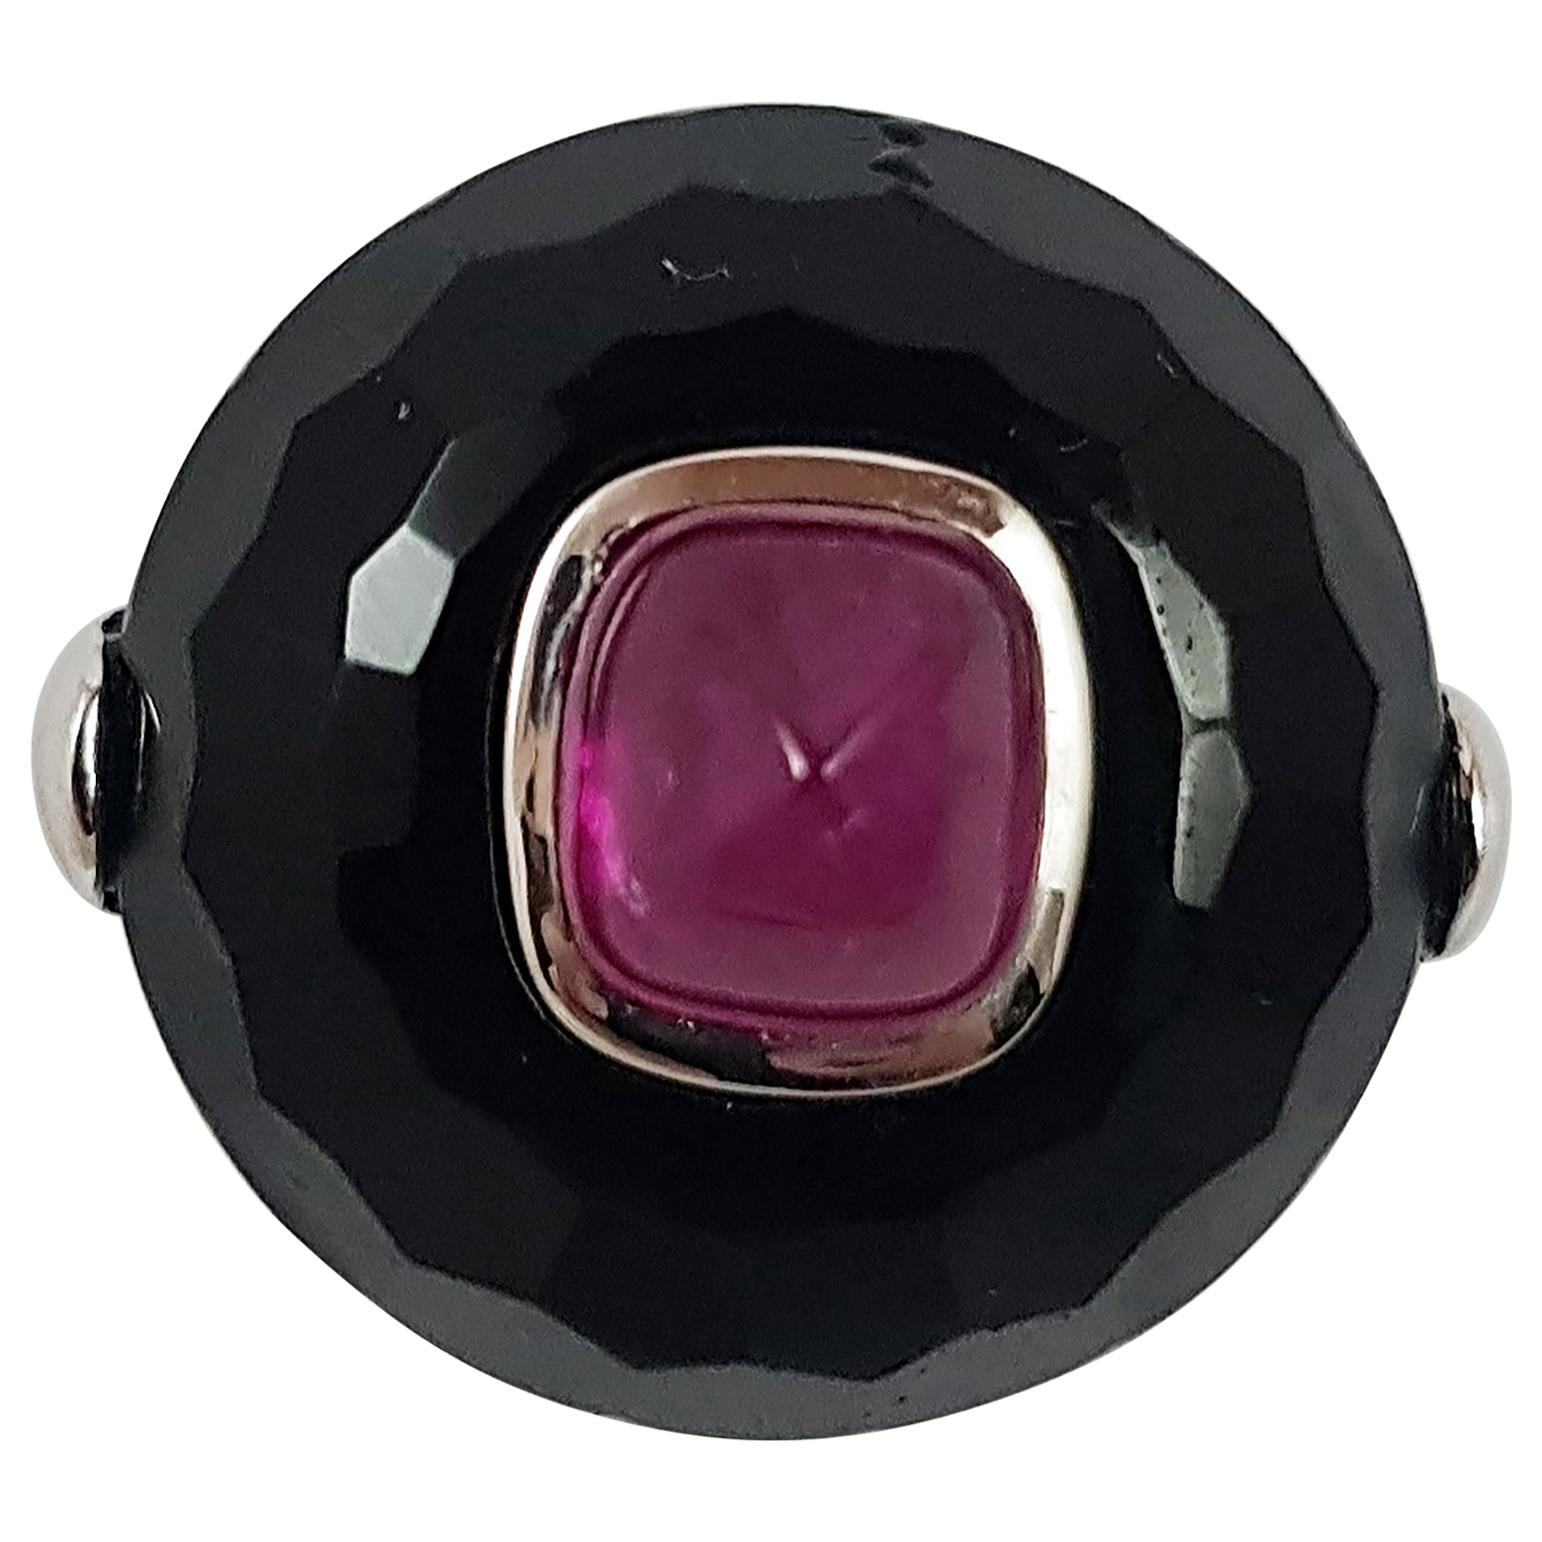 Cabochon Ruby with Onyx Ring Set in 18 Karat White Gold Settings